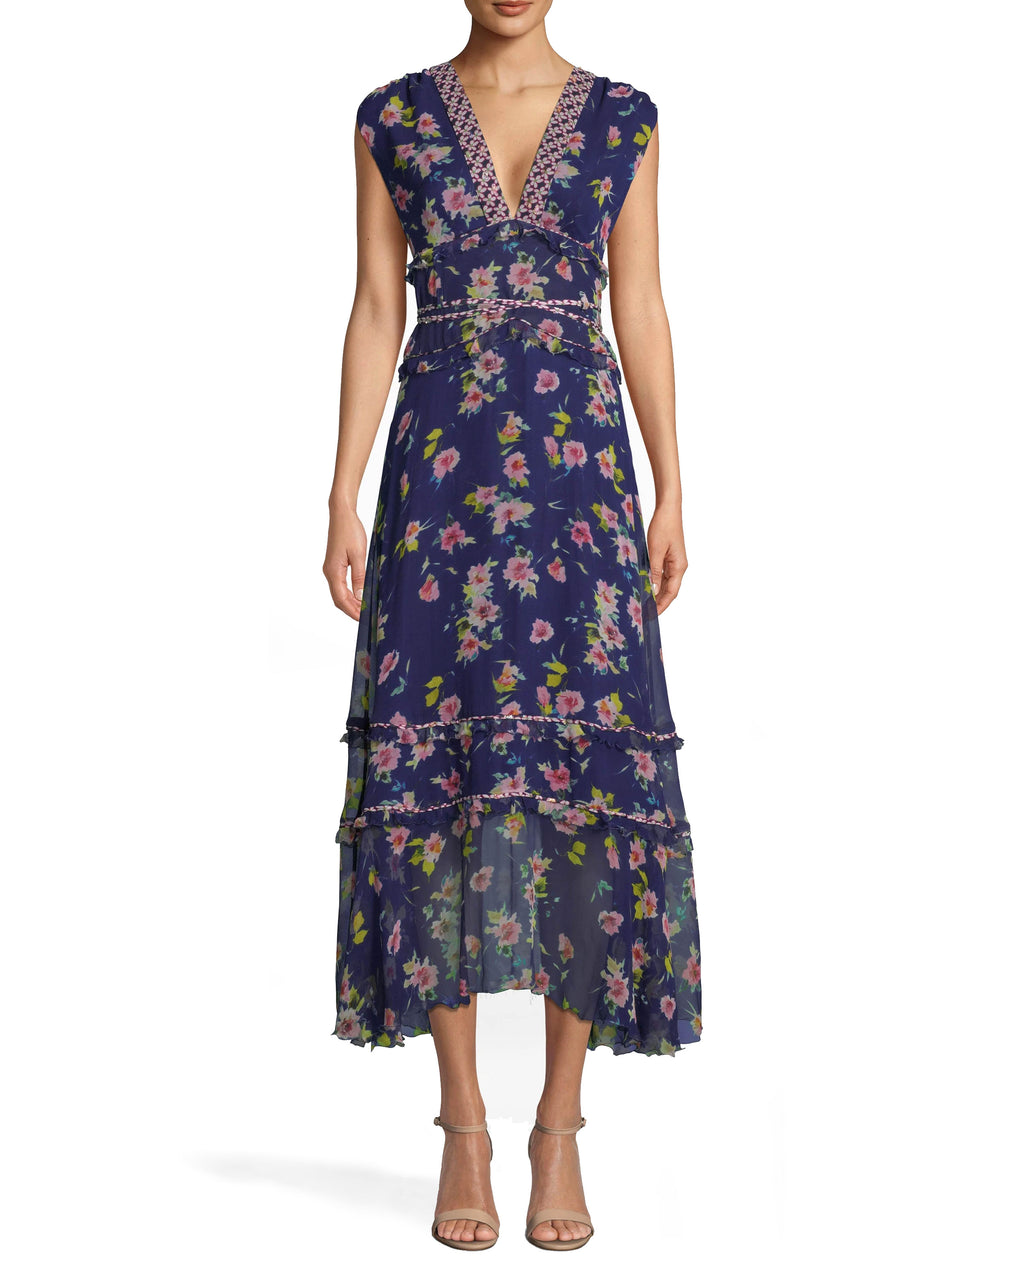 CA10271 - COSMO FLORA MIDI DRESS - dresses - midi - A LITTLE BIT OF FLORA. THIS MIDI DRESS IS A TRUE STUNNER. FUN FLORALS COVER THE BODY AND THE HEM HITS JUST ABOVE THE ANKLE. FEATURING A SHIMMERY TIE WAIST AND THICK STRAPS. PAIR WITH NUDE HEELS FOR A COMPLETE LOOK. Final Sale